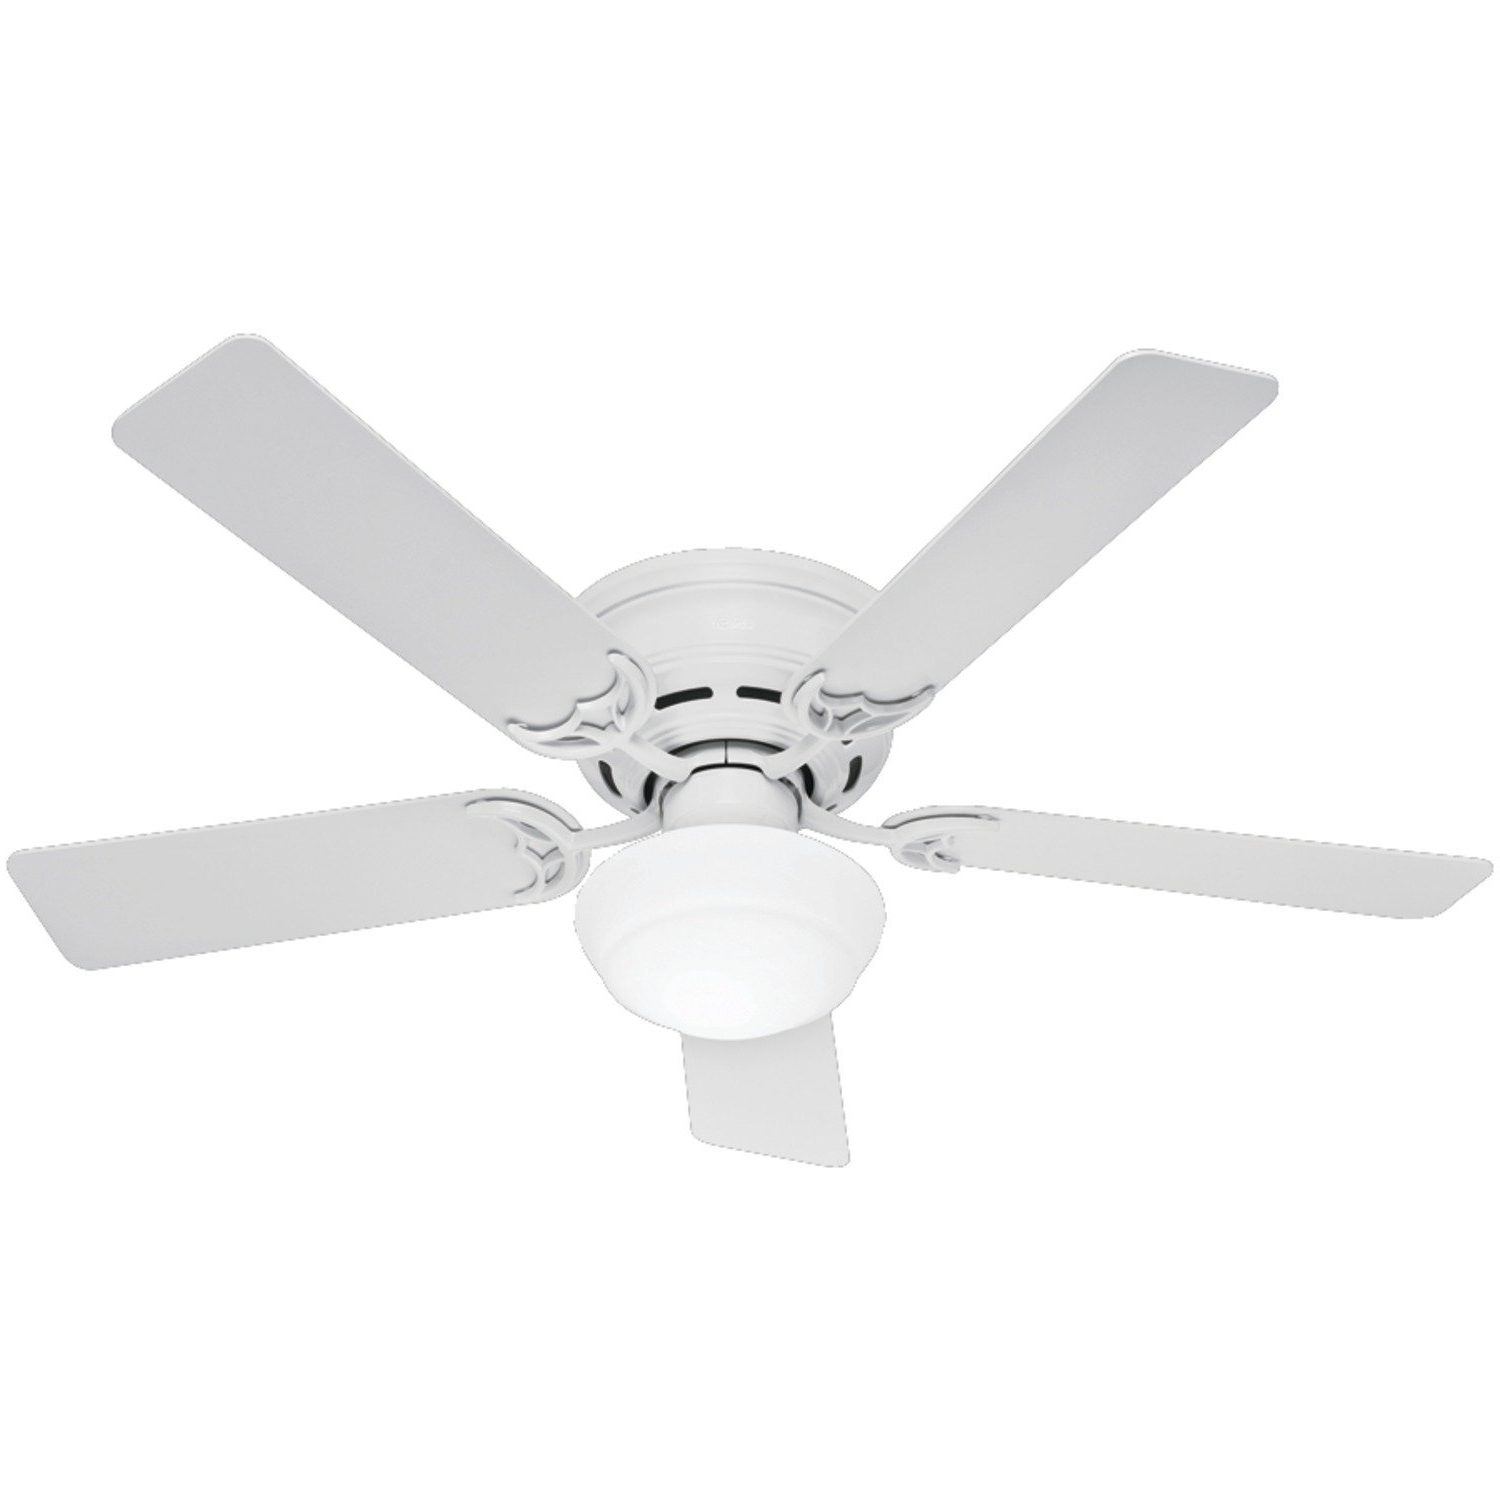 2018 Hunter Outdoor Ceiling Fans With White Lights Inside The Multifunction Hugger Ceiling Fans With Light (View 1 of 20)